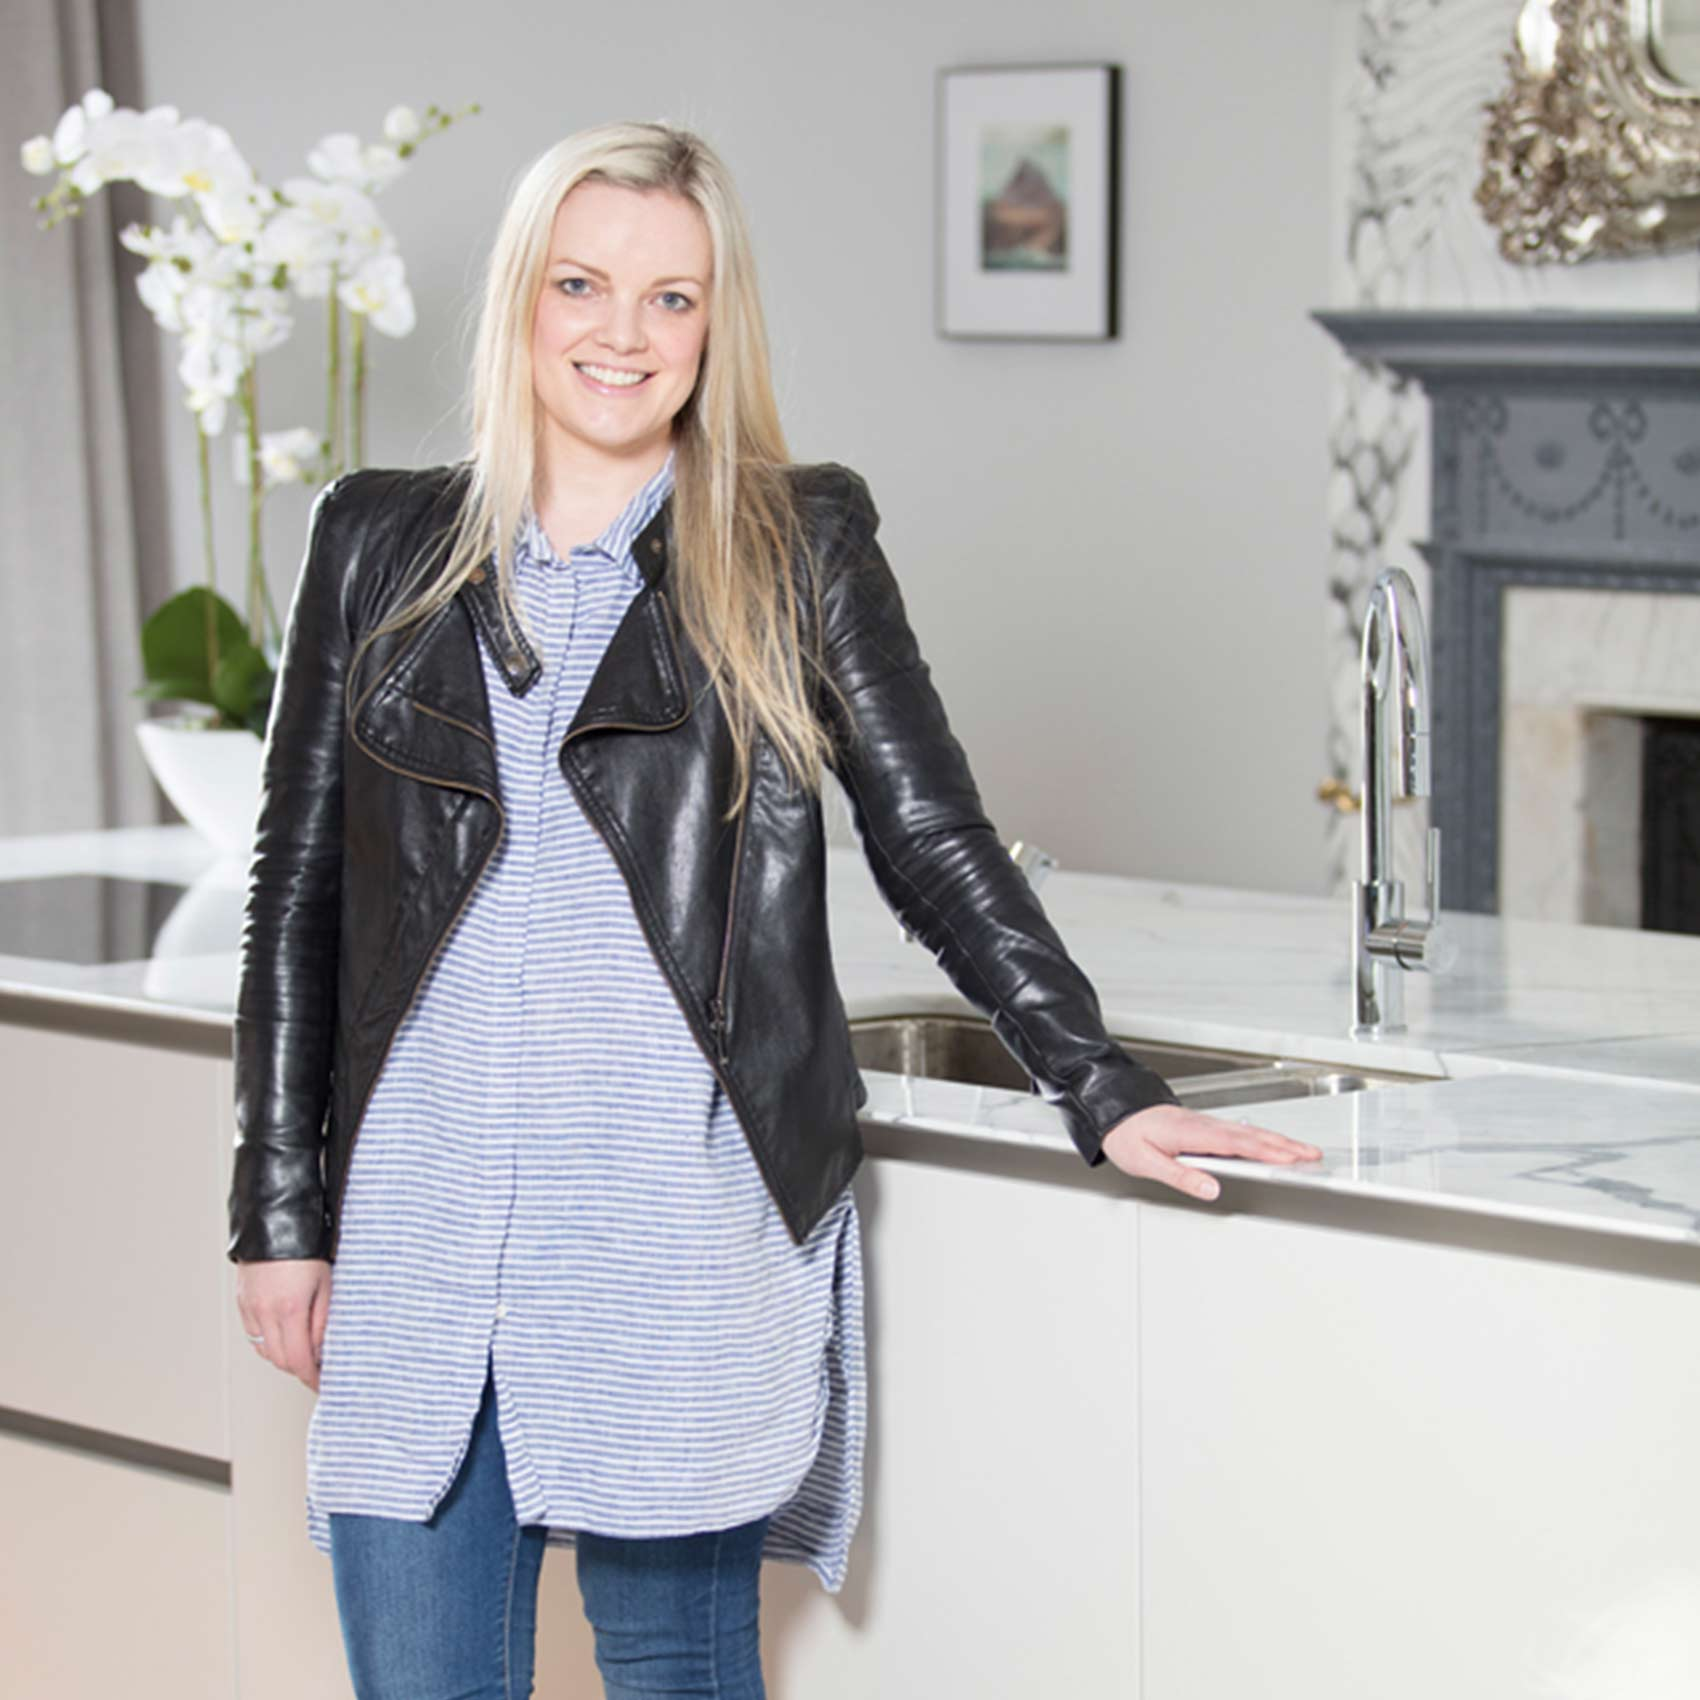 The Third Time's a Charm for Two Scottish Homeowners, Design*Sponge